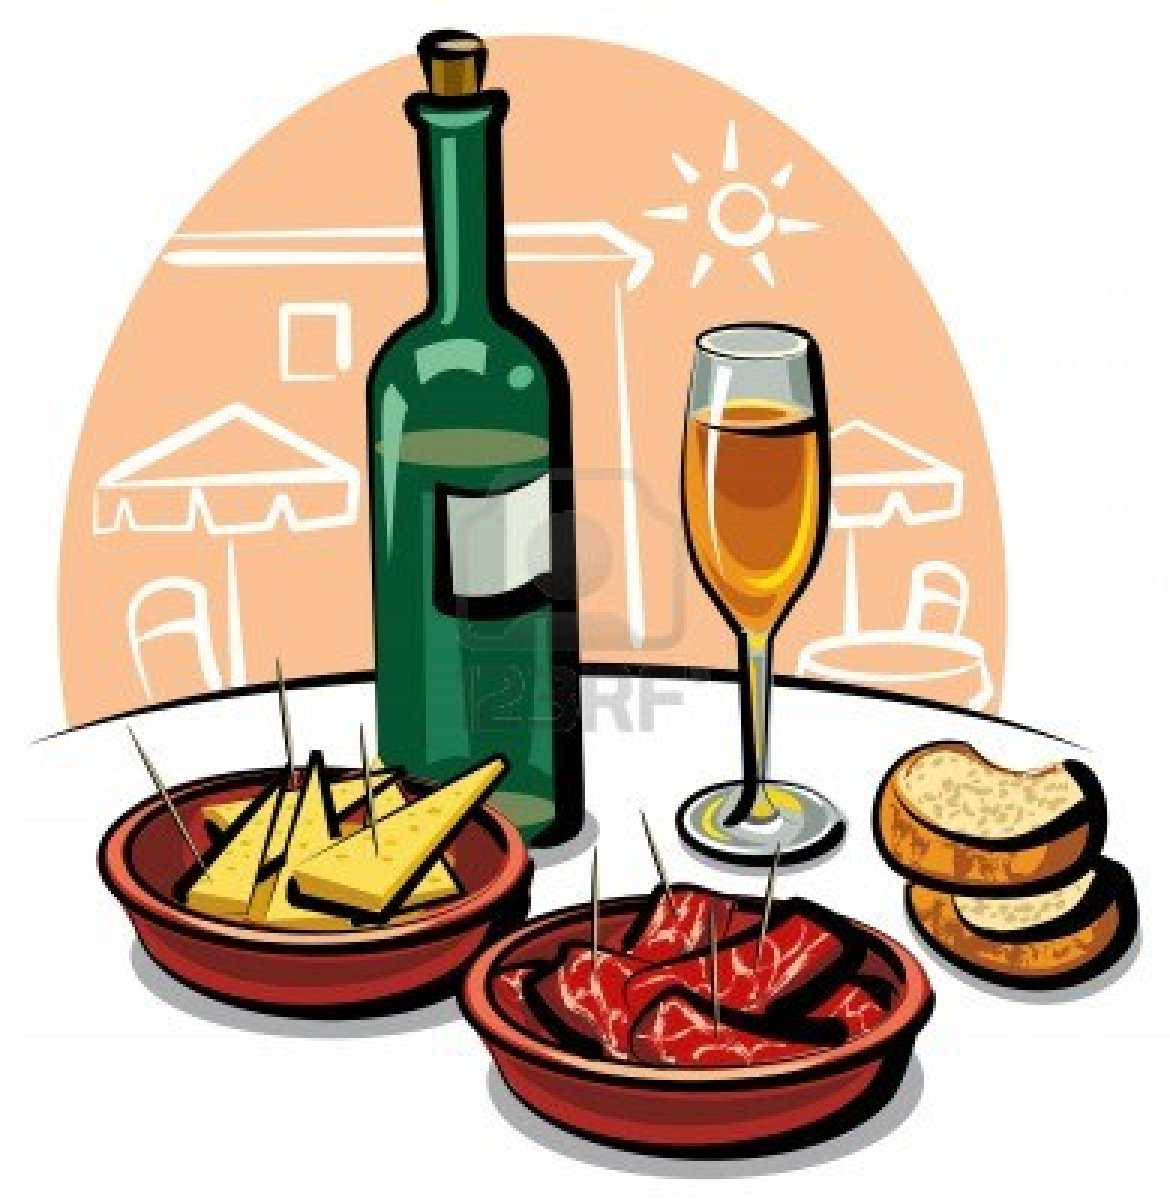 Boose clipart food and drink Pin 1 wine clip &